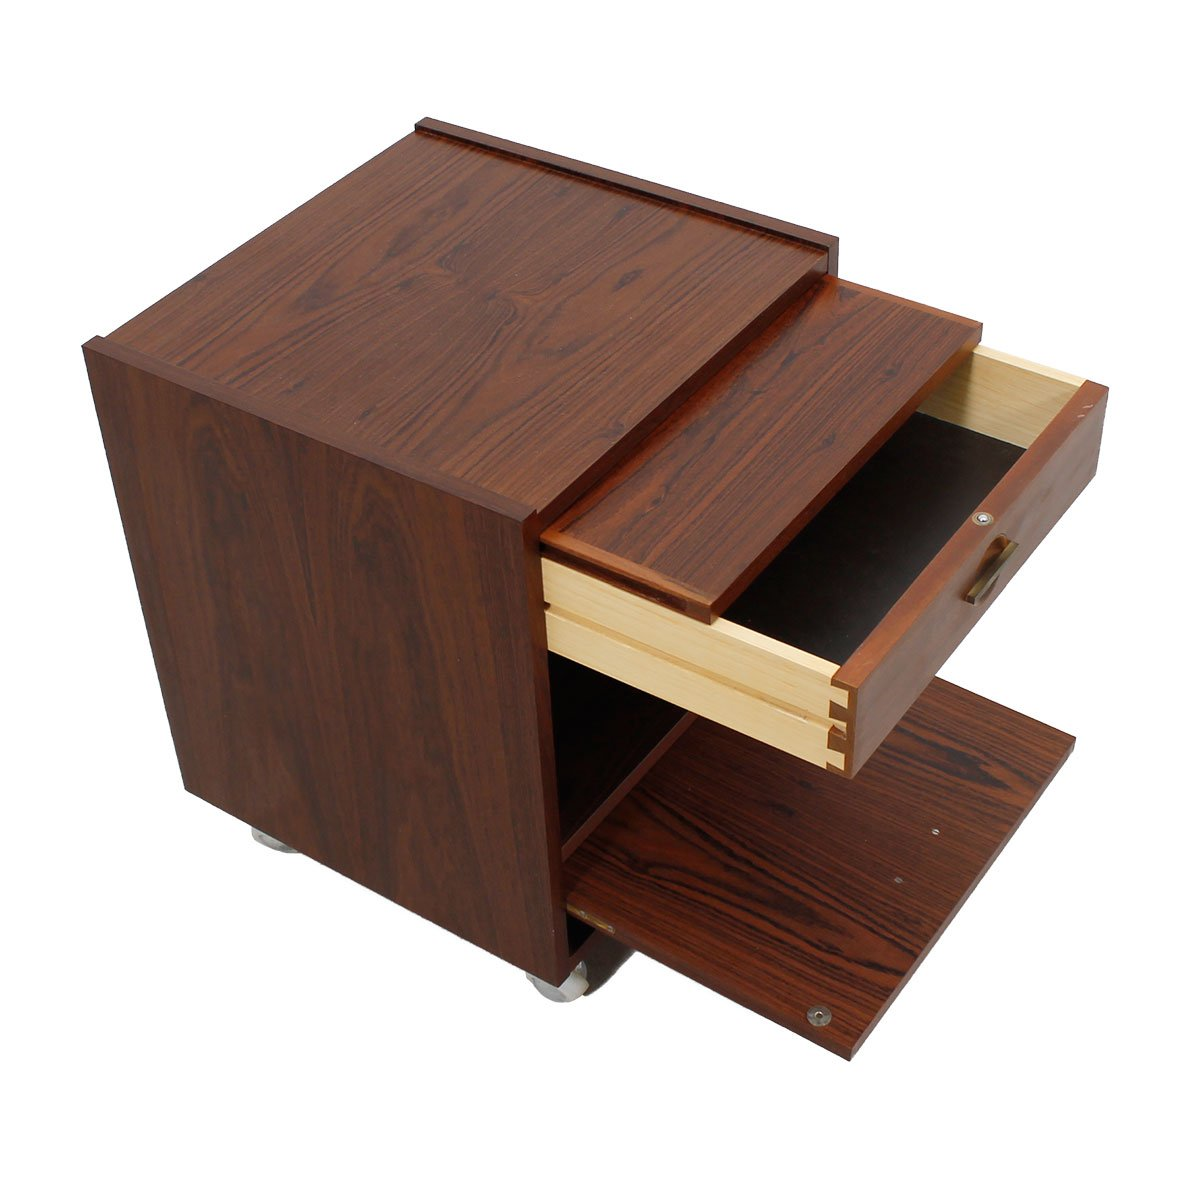 Danish Modern Rosewood Nightstands / End Tables (priced as pair)